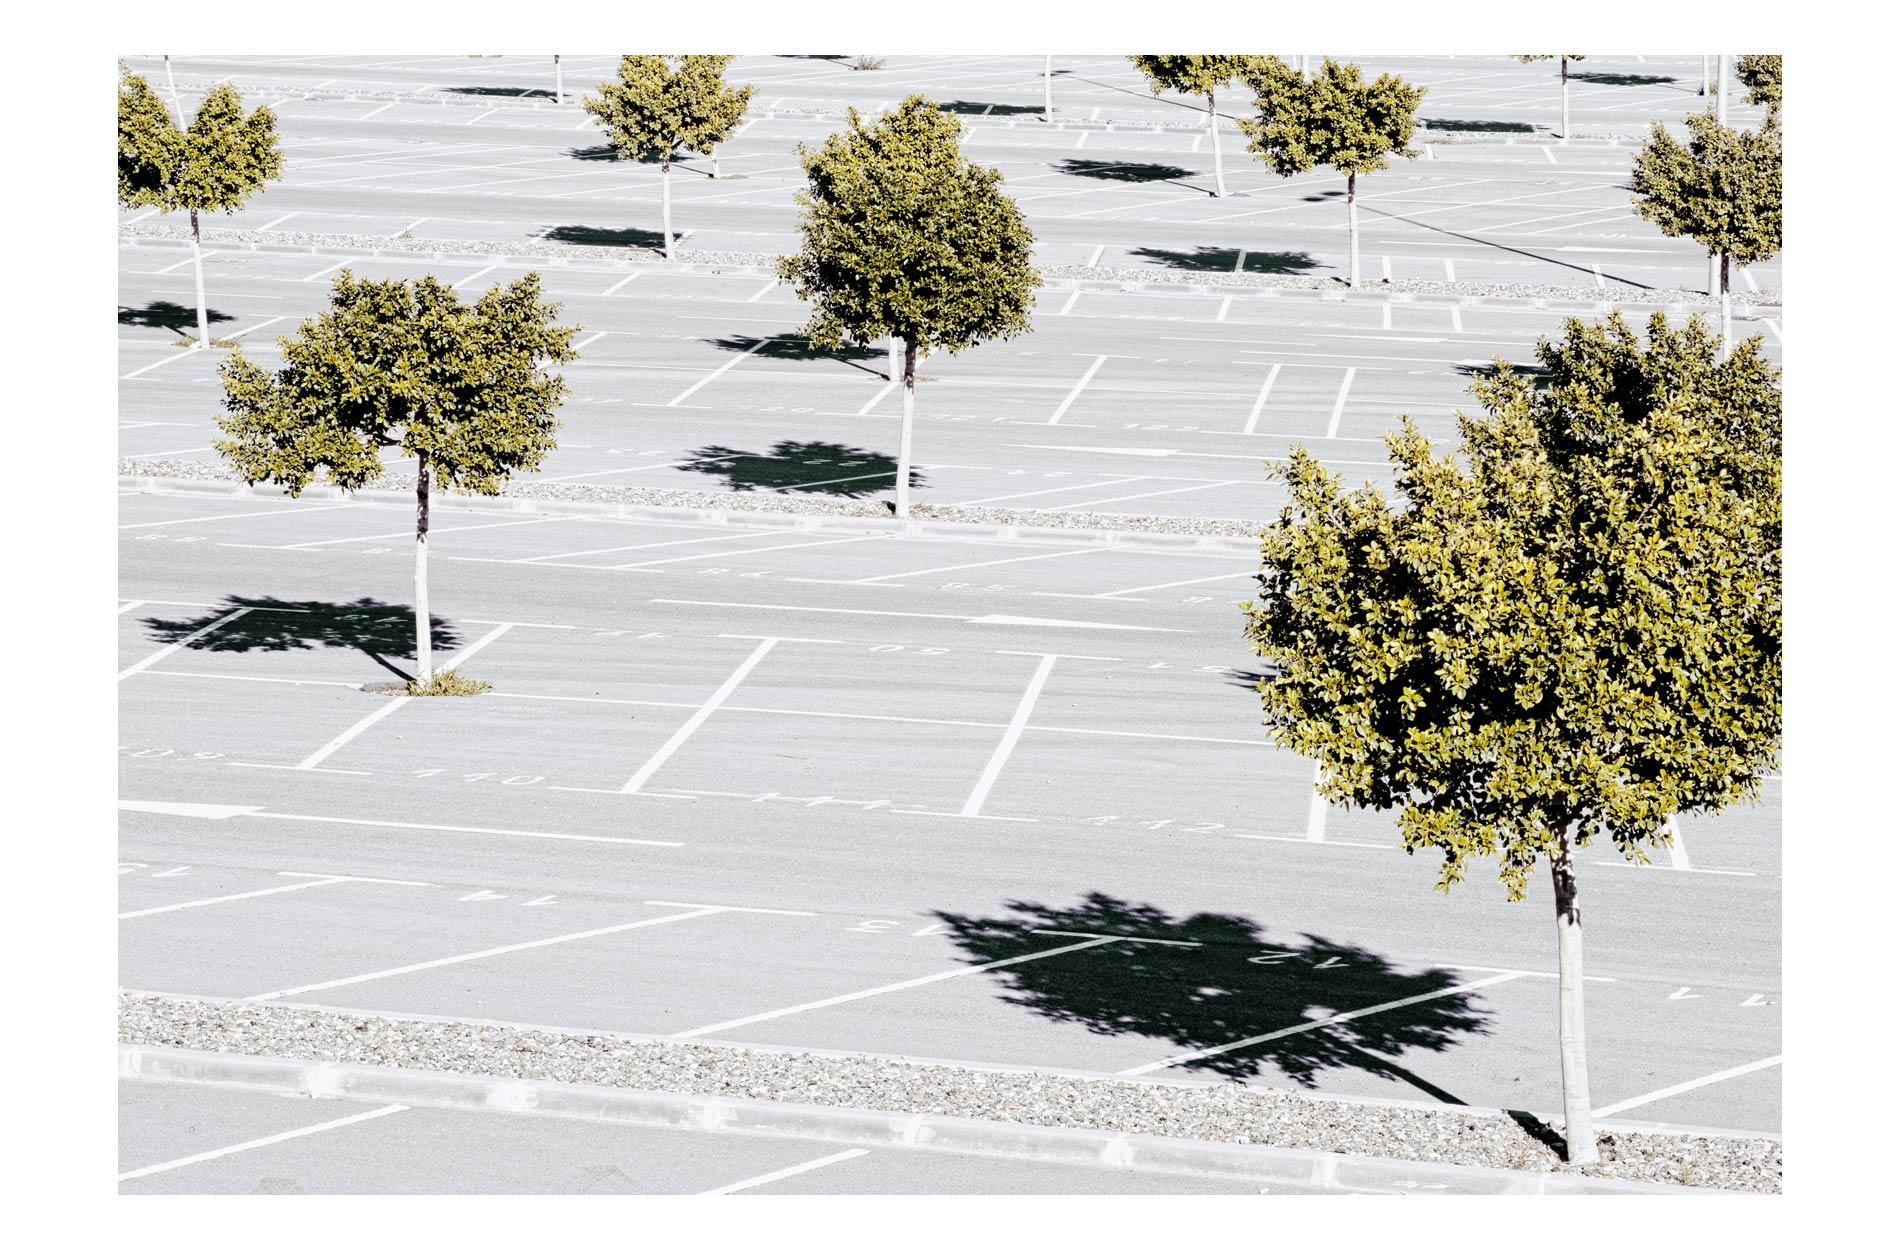 trees-carpark